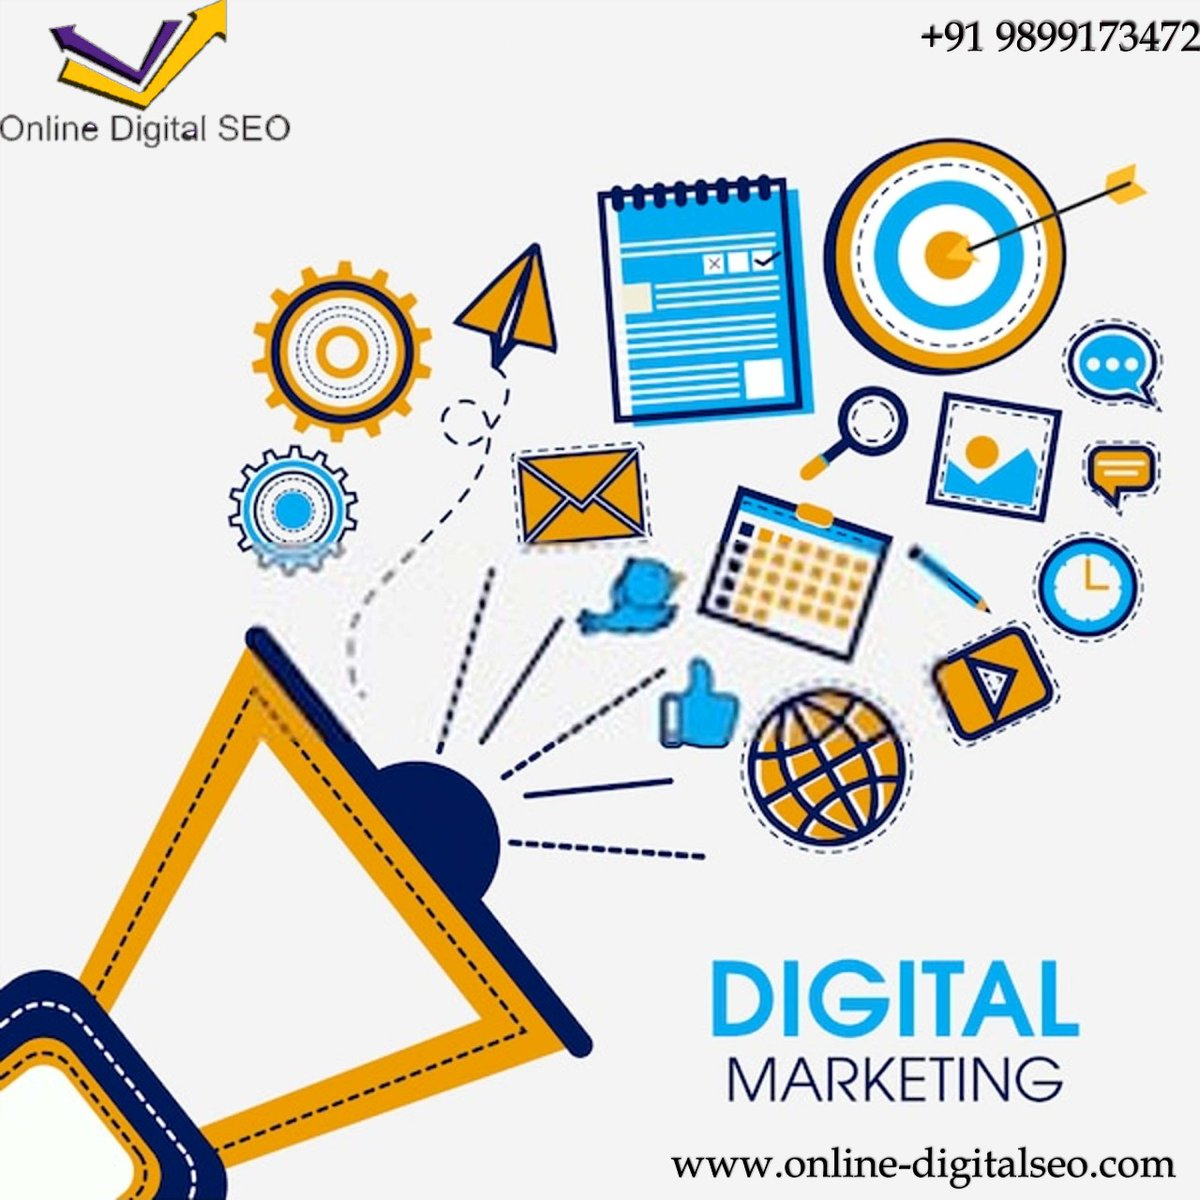 Achieve your goal target with the best digital marketing......#onlinedigitalseo More Call and visit web... http://online-digitalseo.com / +91 9899173472 #onlinedigital #onlinedigtalseo #Building #brand #awareness #Generating #highvolume #BornWithWingspic.twitter.com/l1htfNUoYS